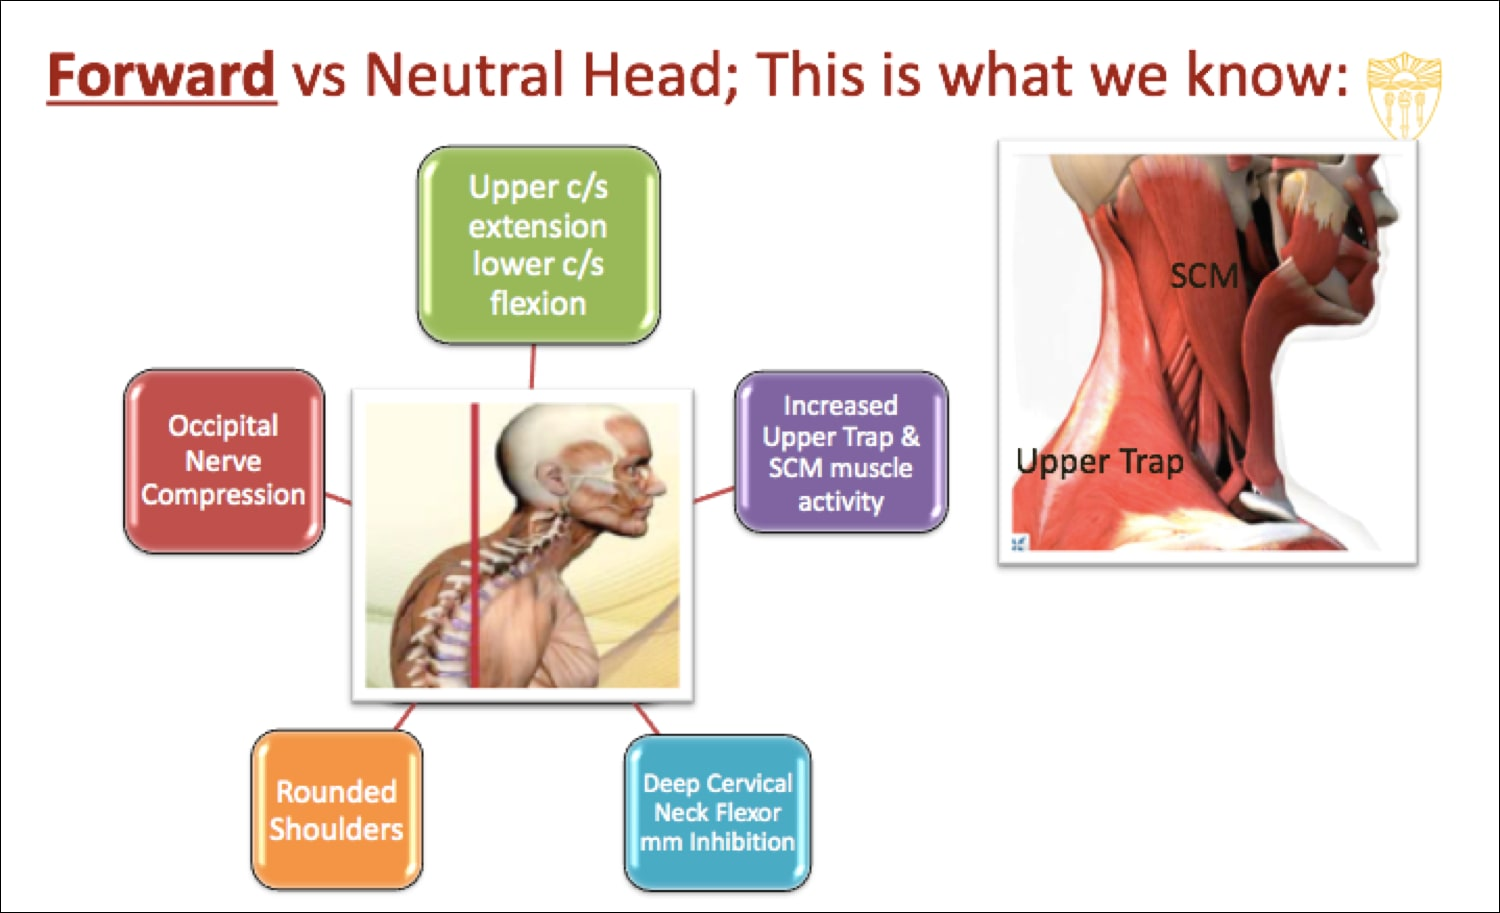 Image of consequences of the forward head posture.